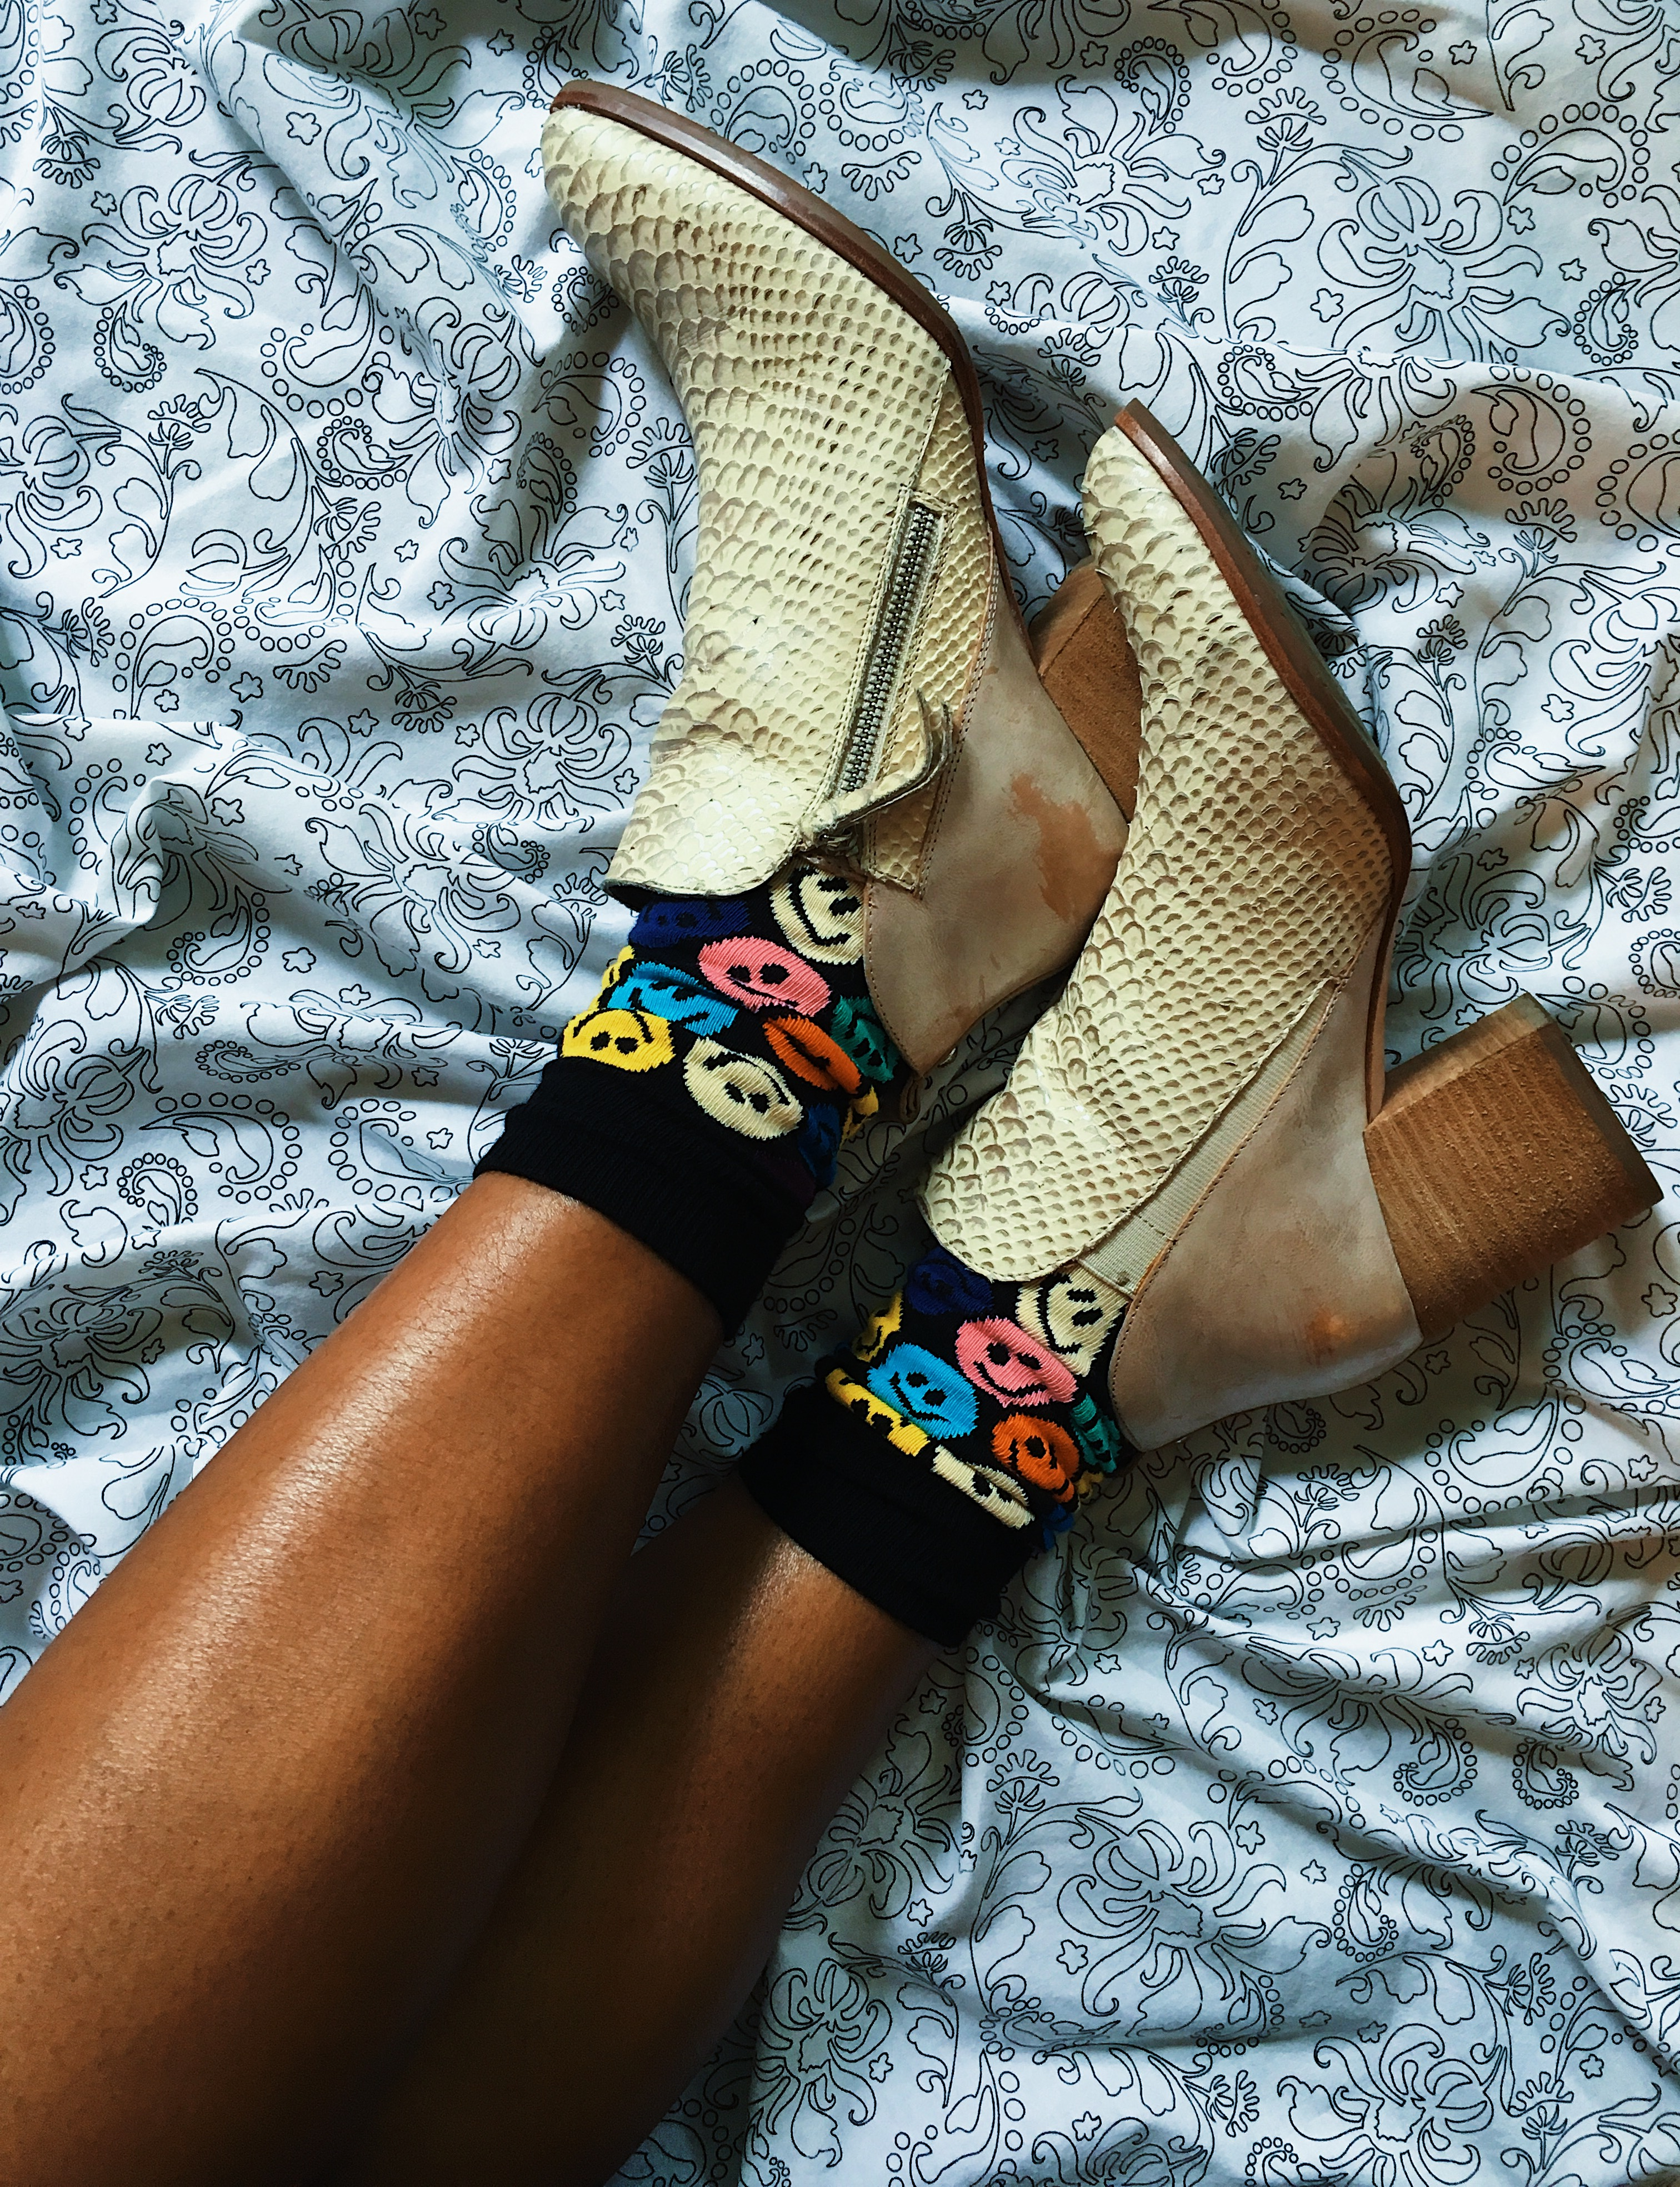 happy socks-colorful socks-snake skin booties-wear who you are-lcm